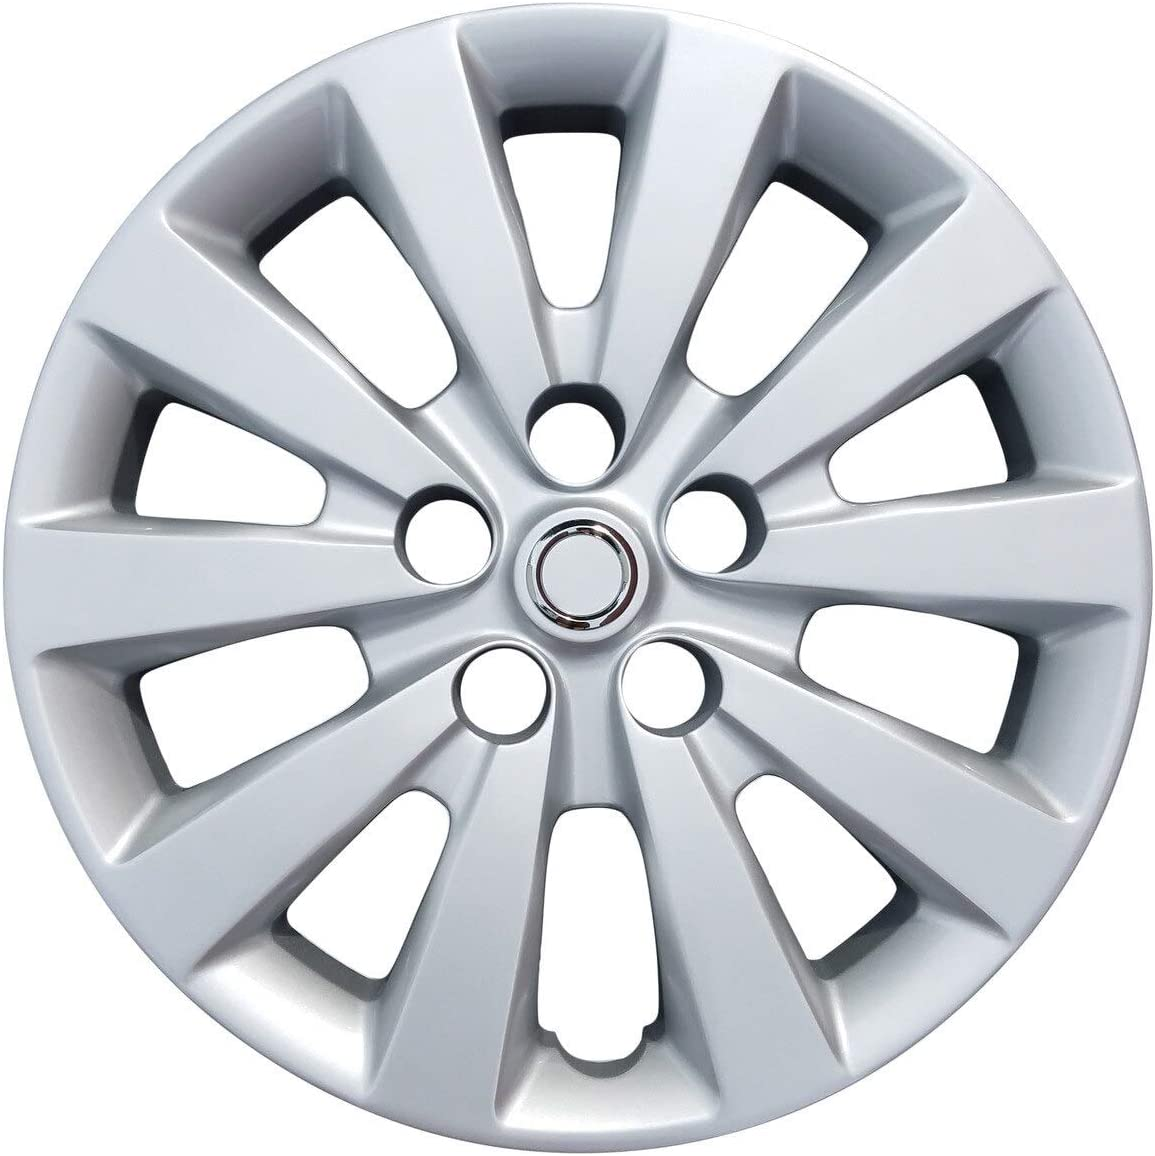 """Hubcap NEW fits Sentra Nissan 2013 14 15 16 17 18 16/"""" Wheel Cover 10 spoke style"""